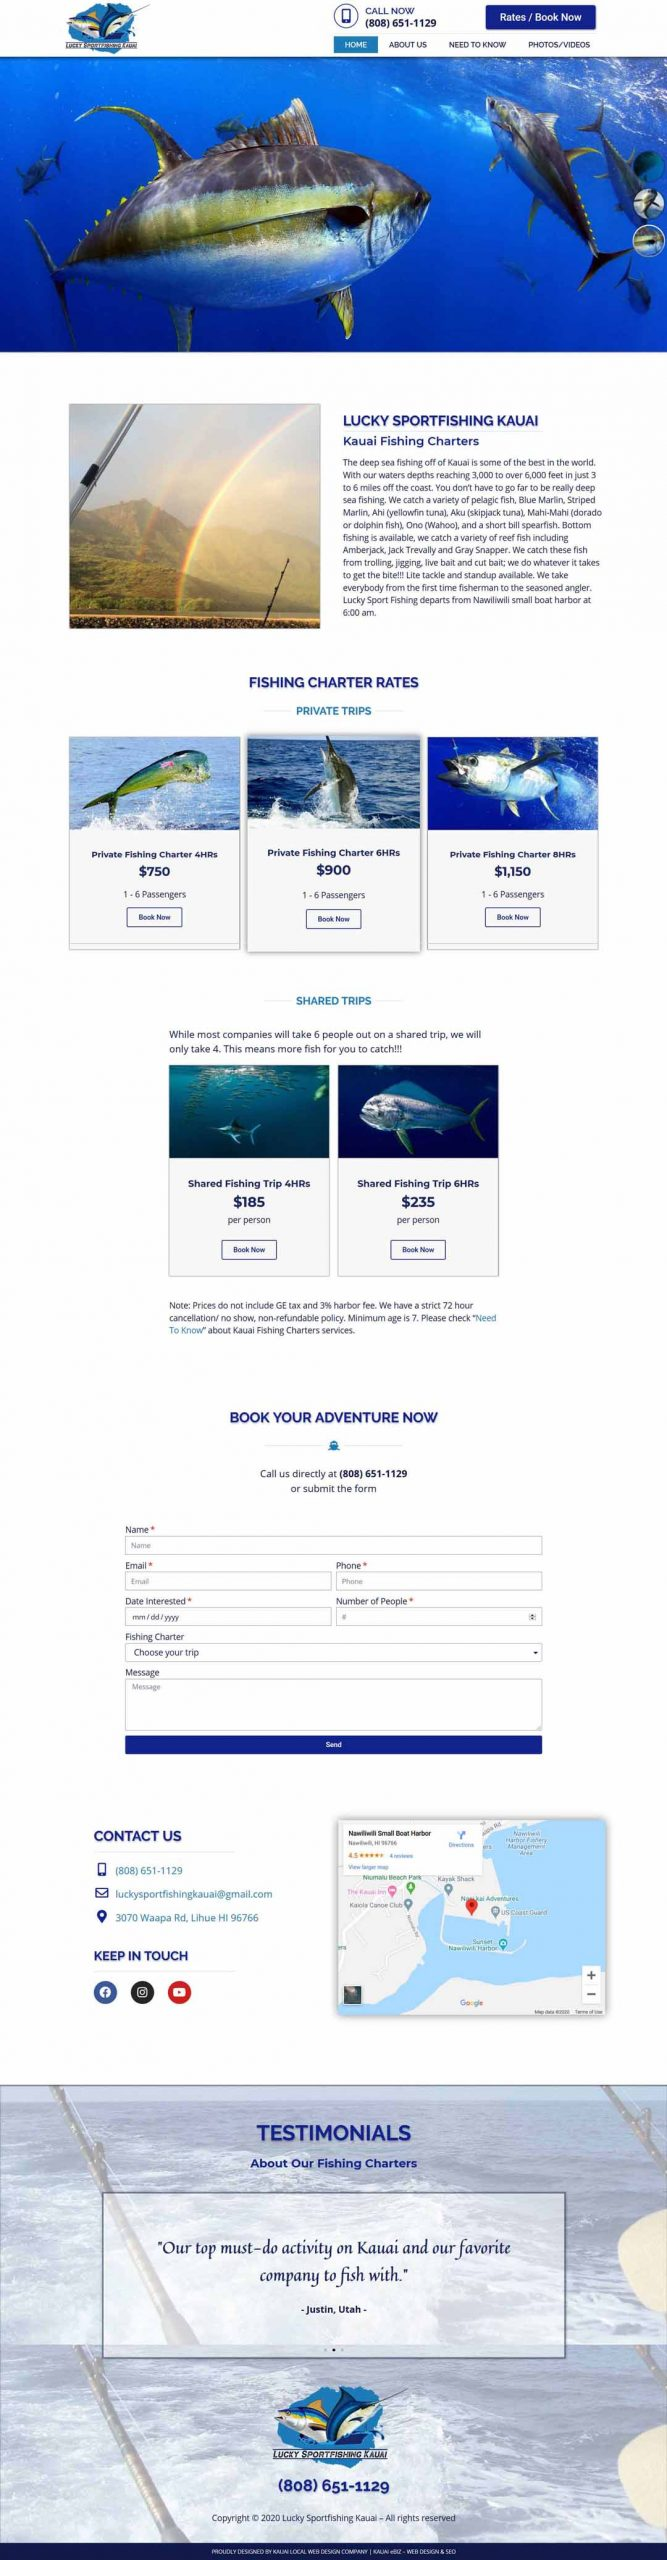 sportfishing kauai website full